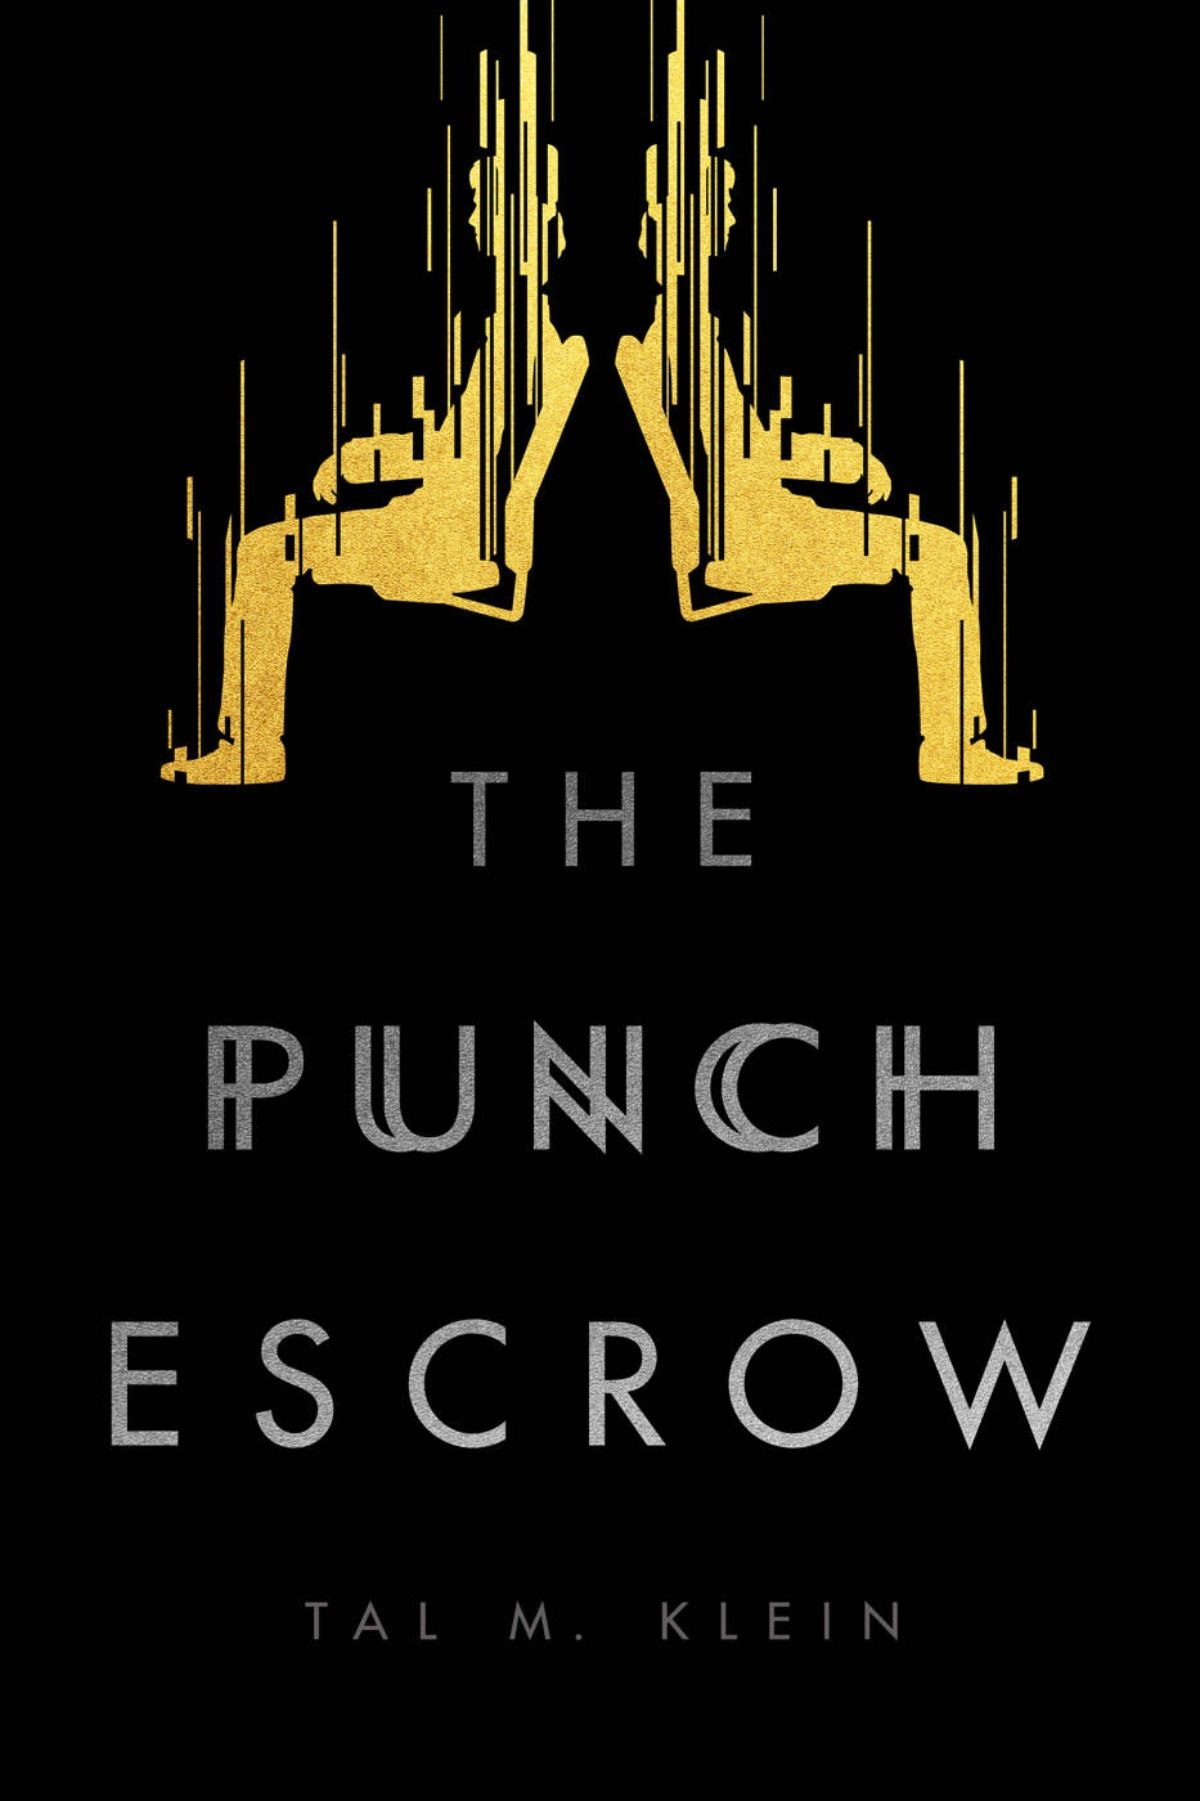 The Punch Escrow is about teleportation gone wrong.